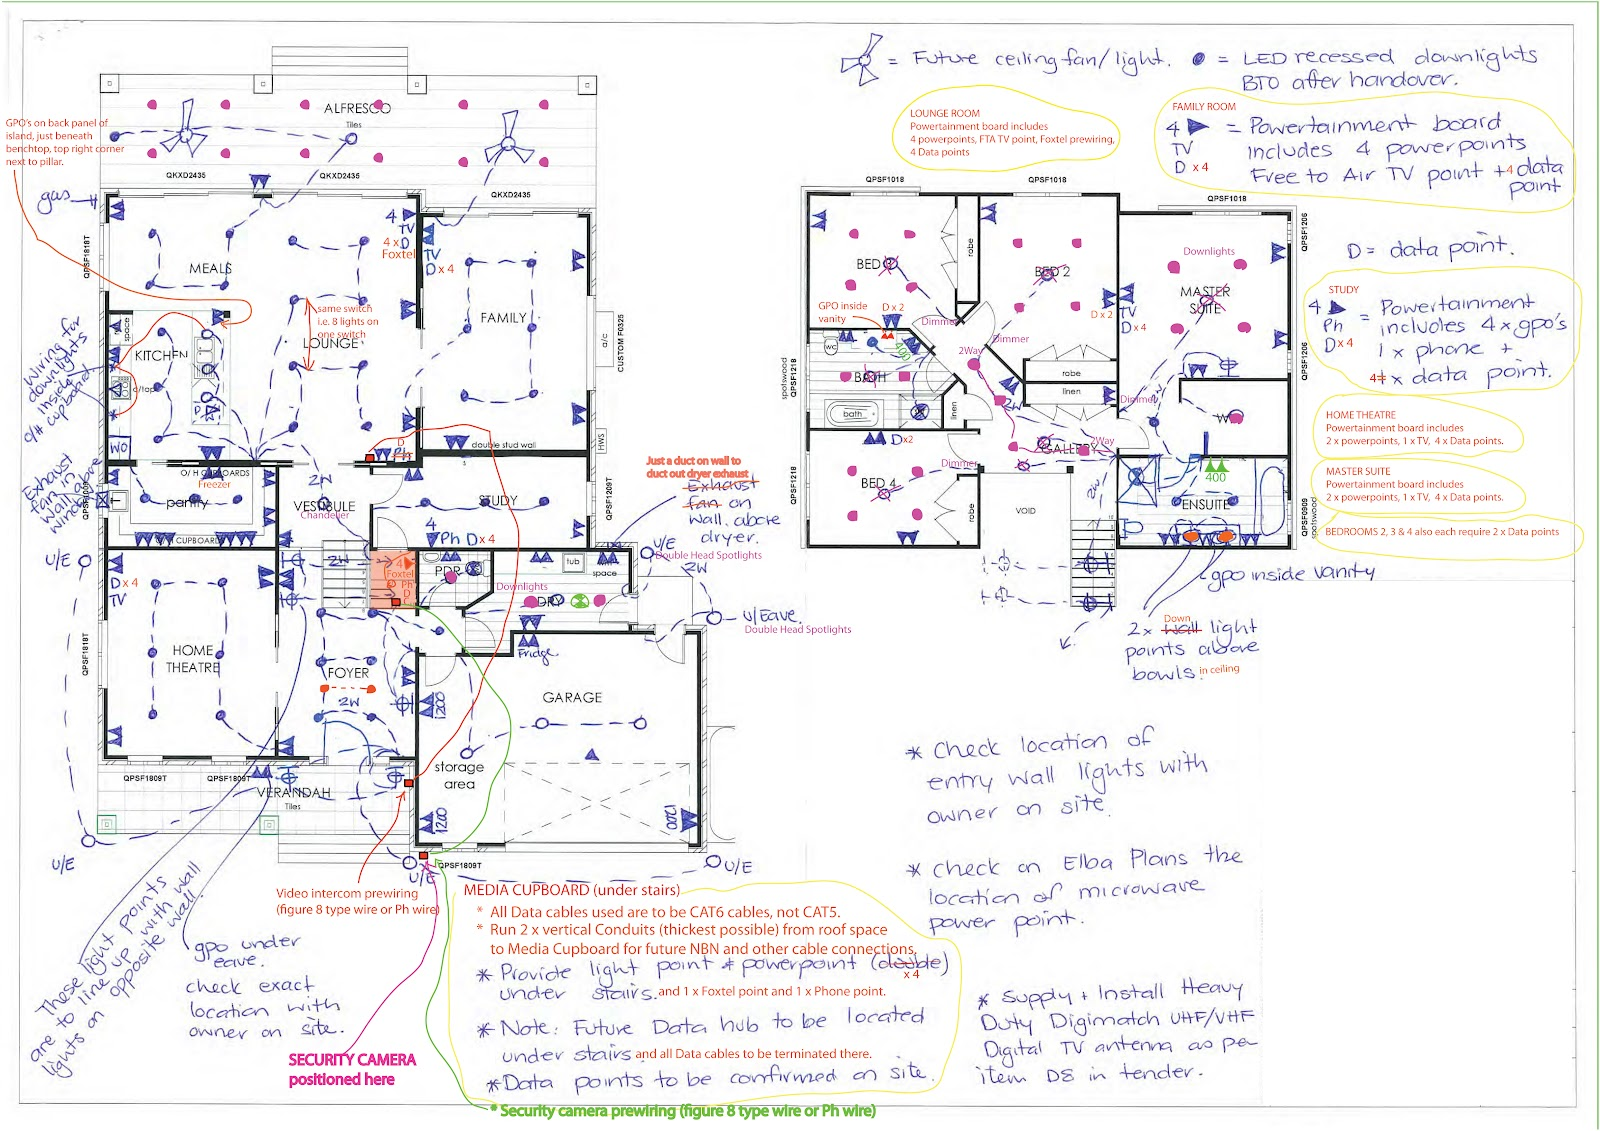 medium resolution of click to view larger image of electrical plan